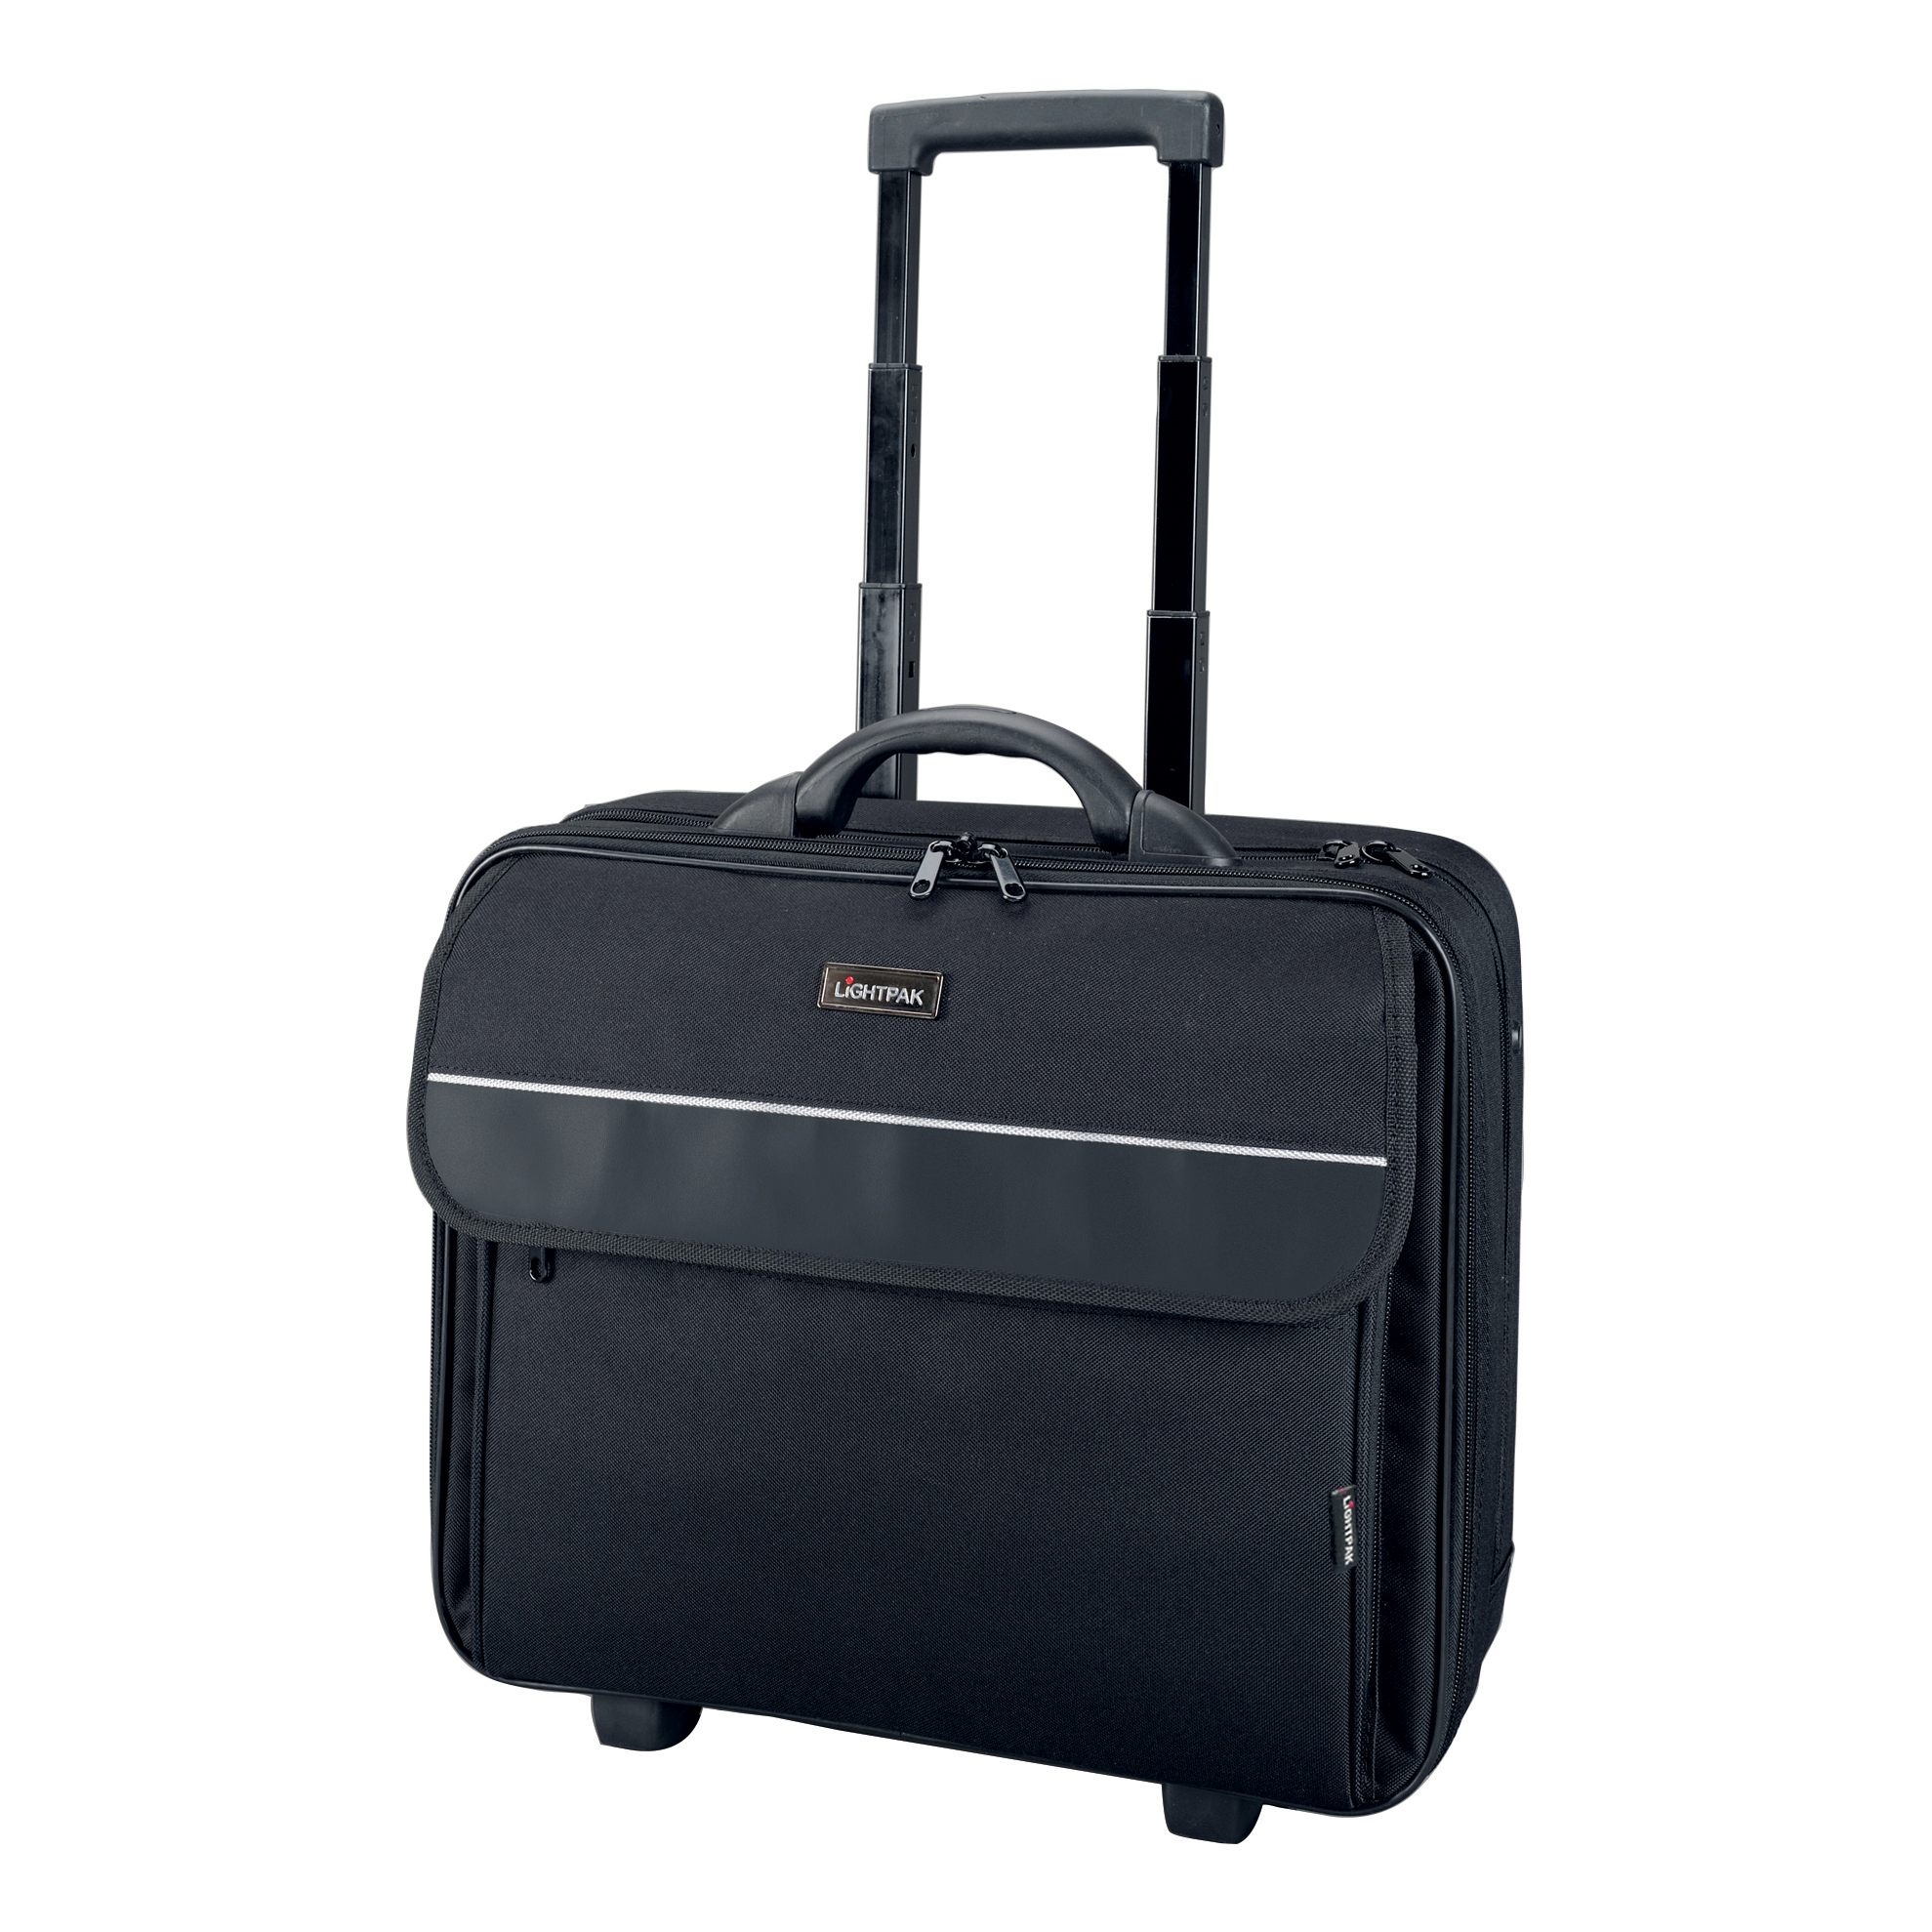 Lightpak Treviso Laptop Trolley Overnight Nylon Capacity 17in Black Ref 92702